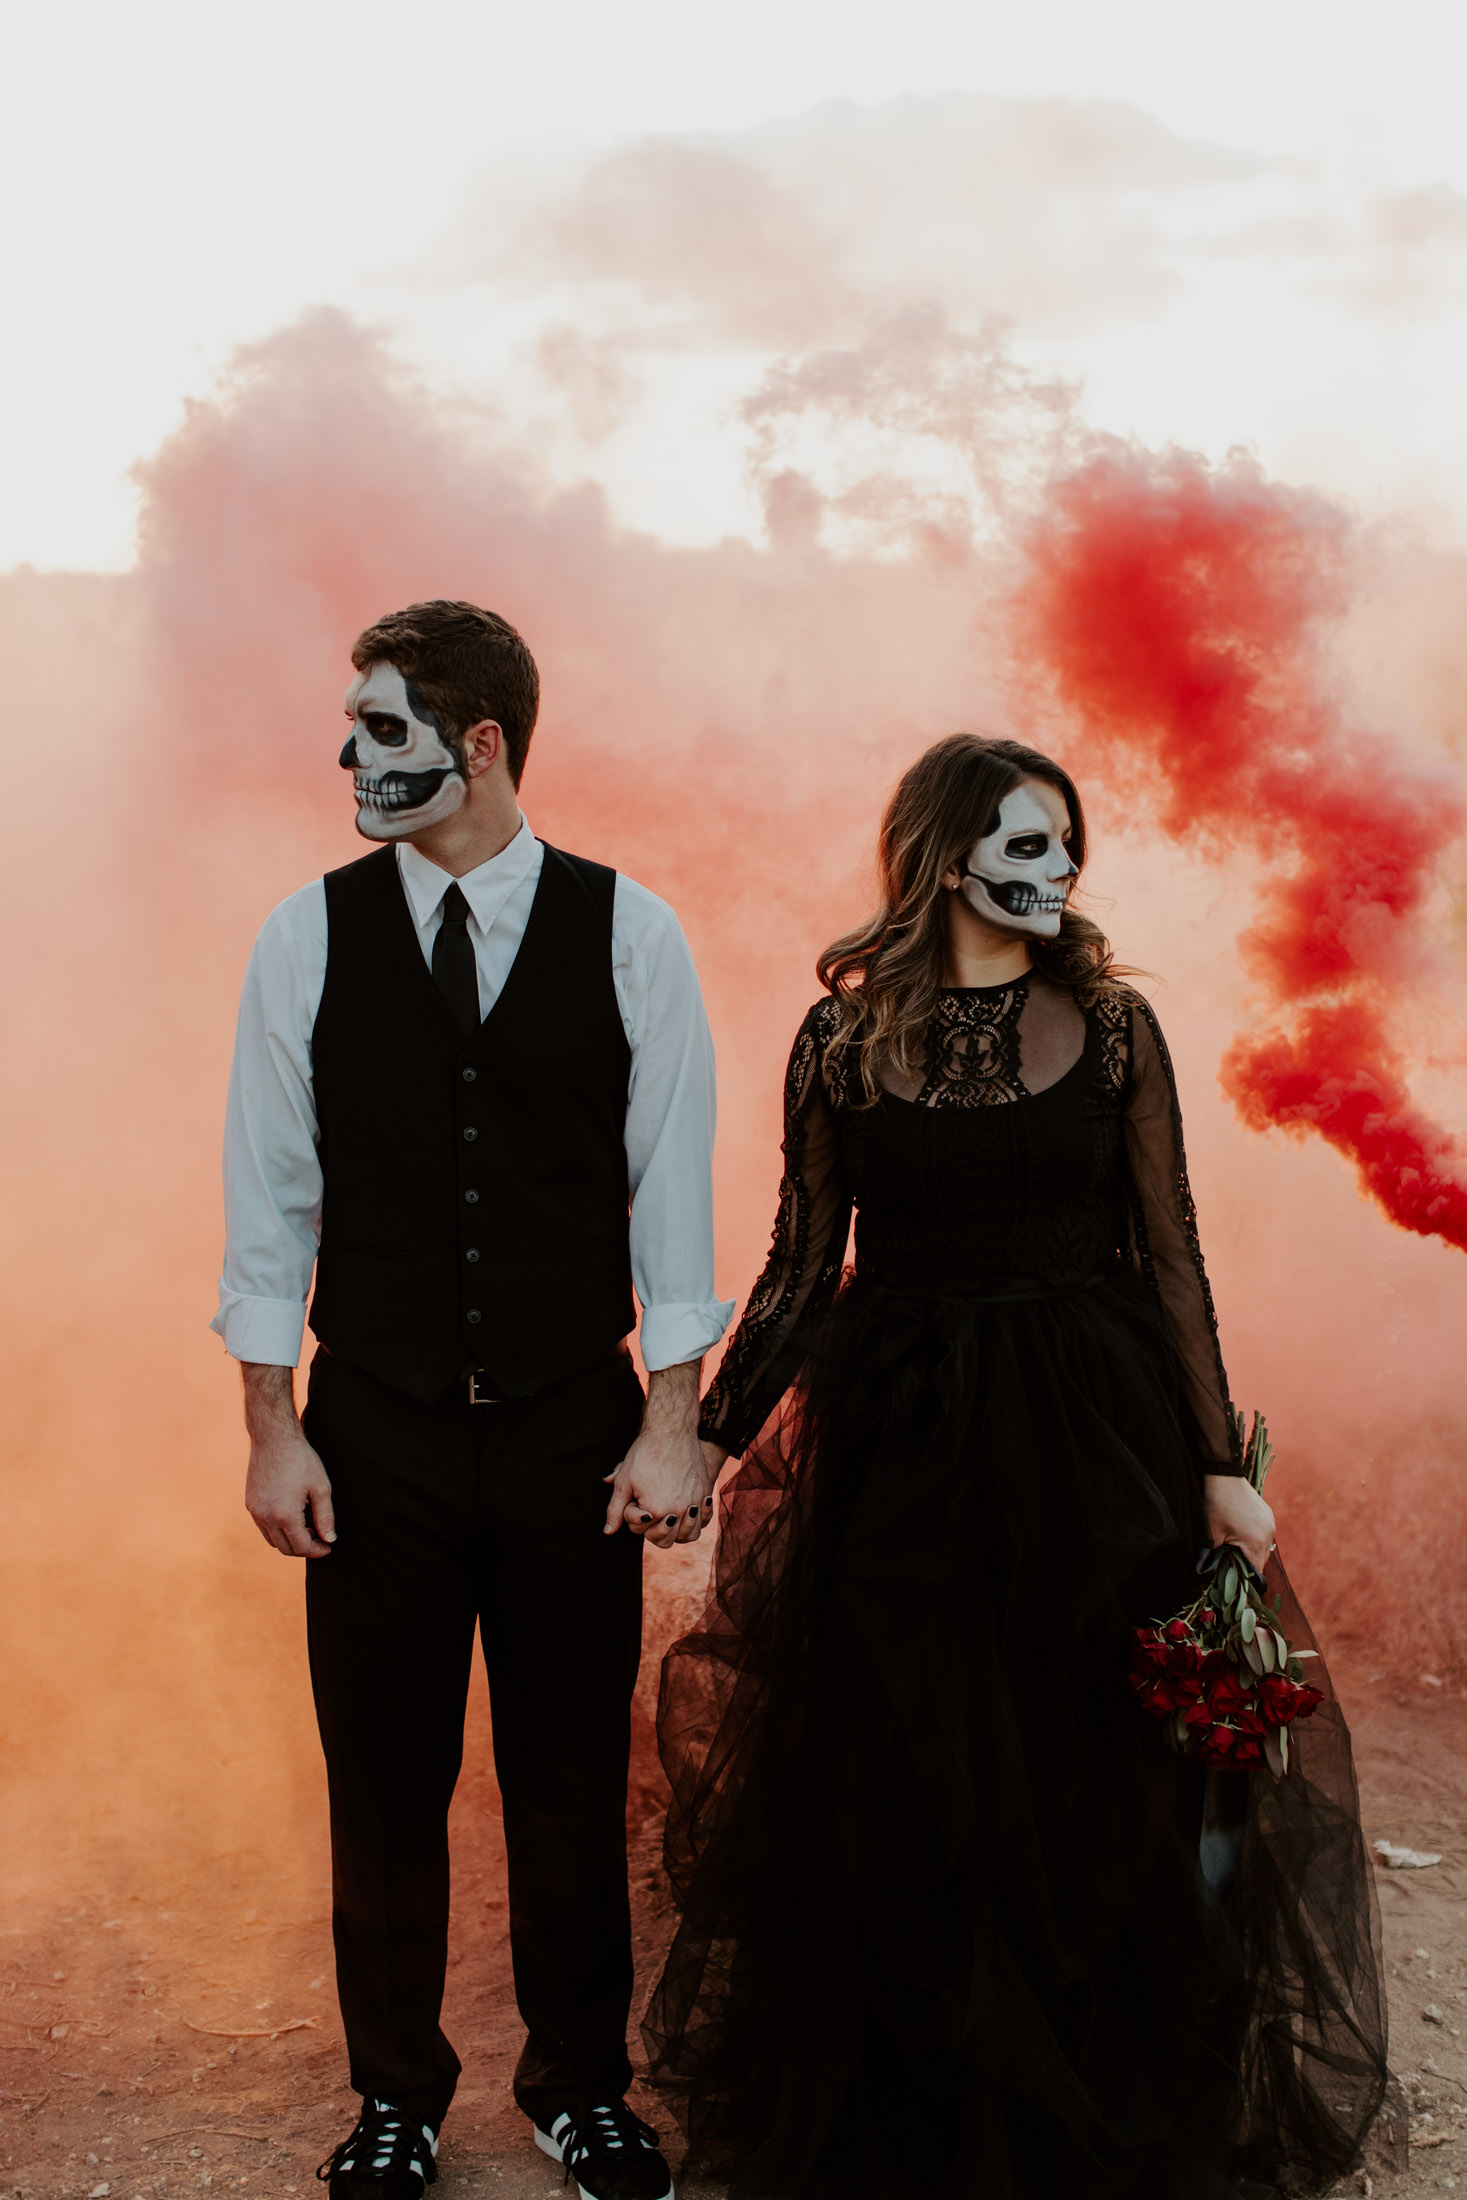 red smoke bomb in fort worth for a spooky halloween shoot